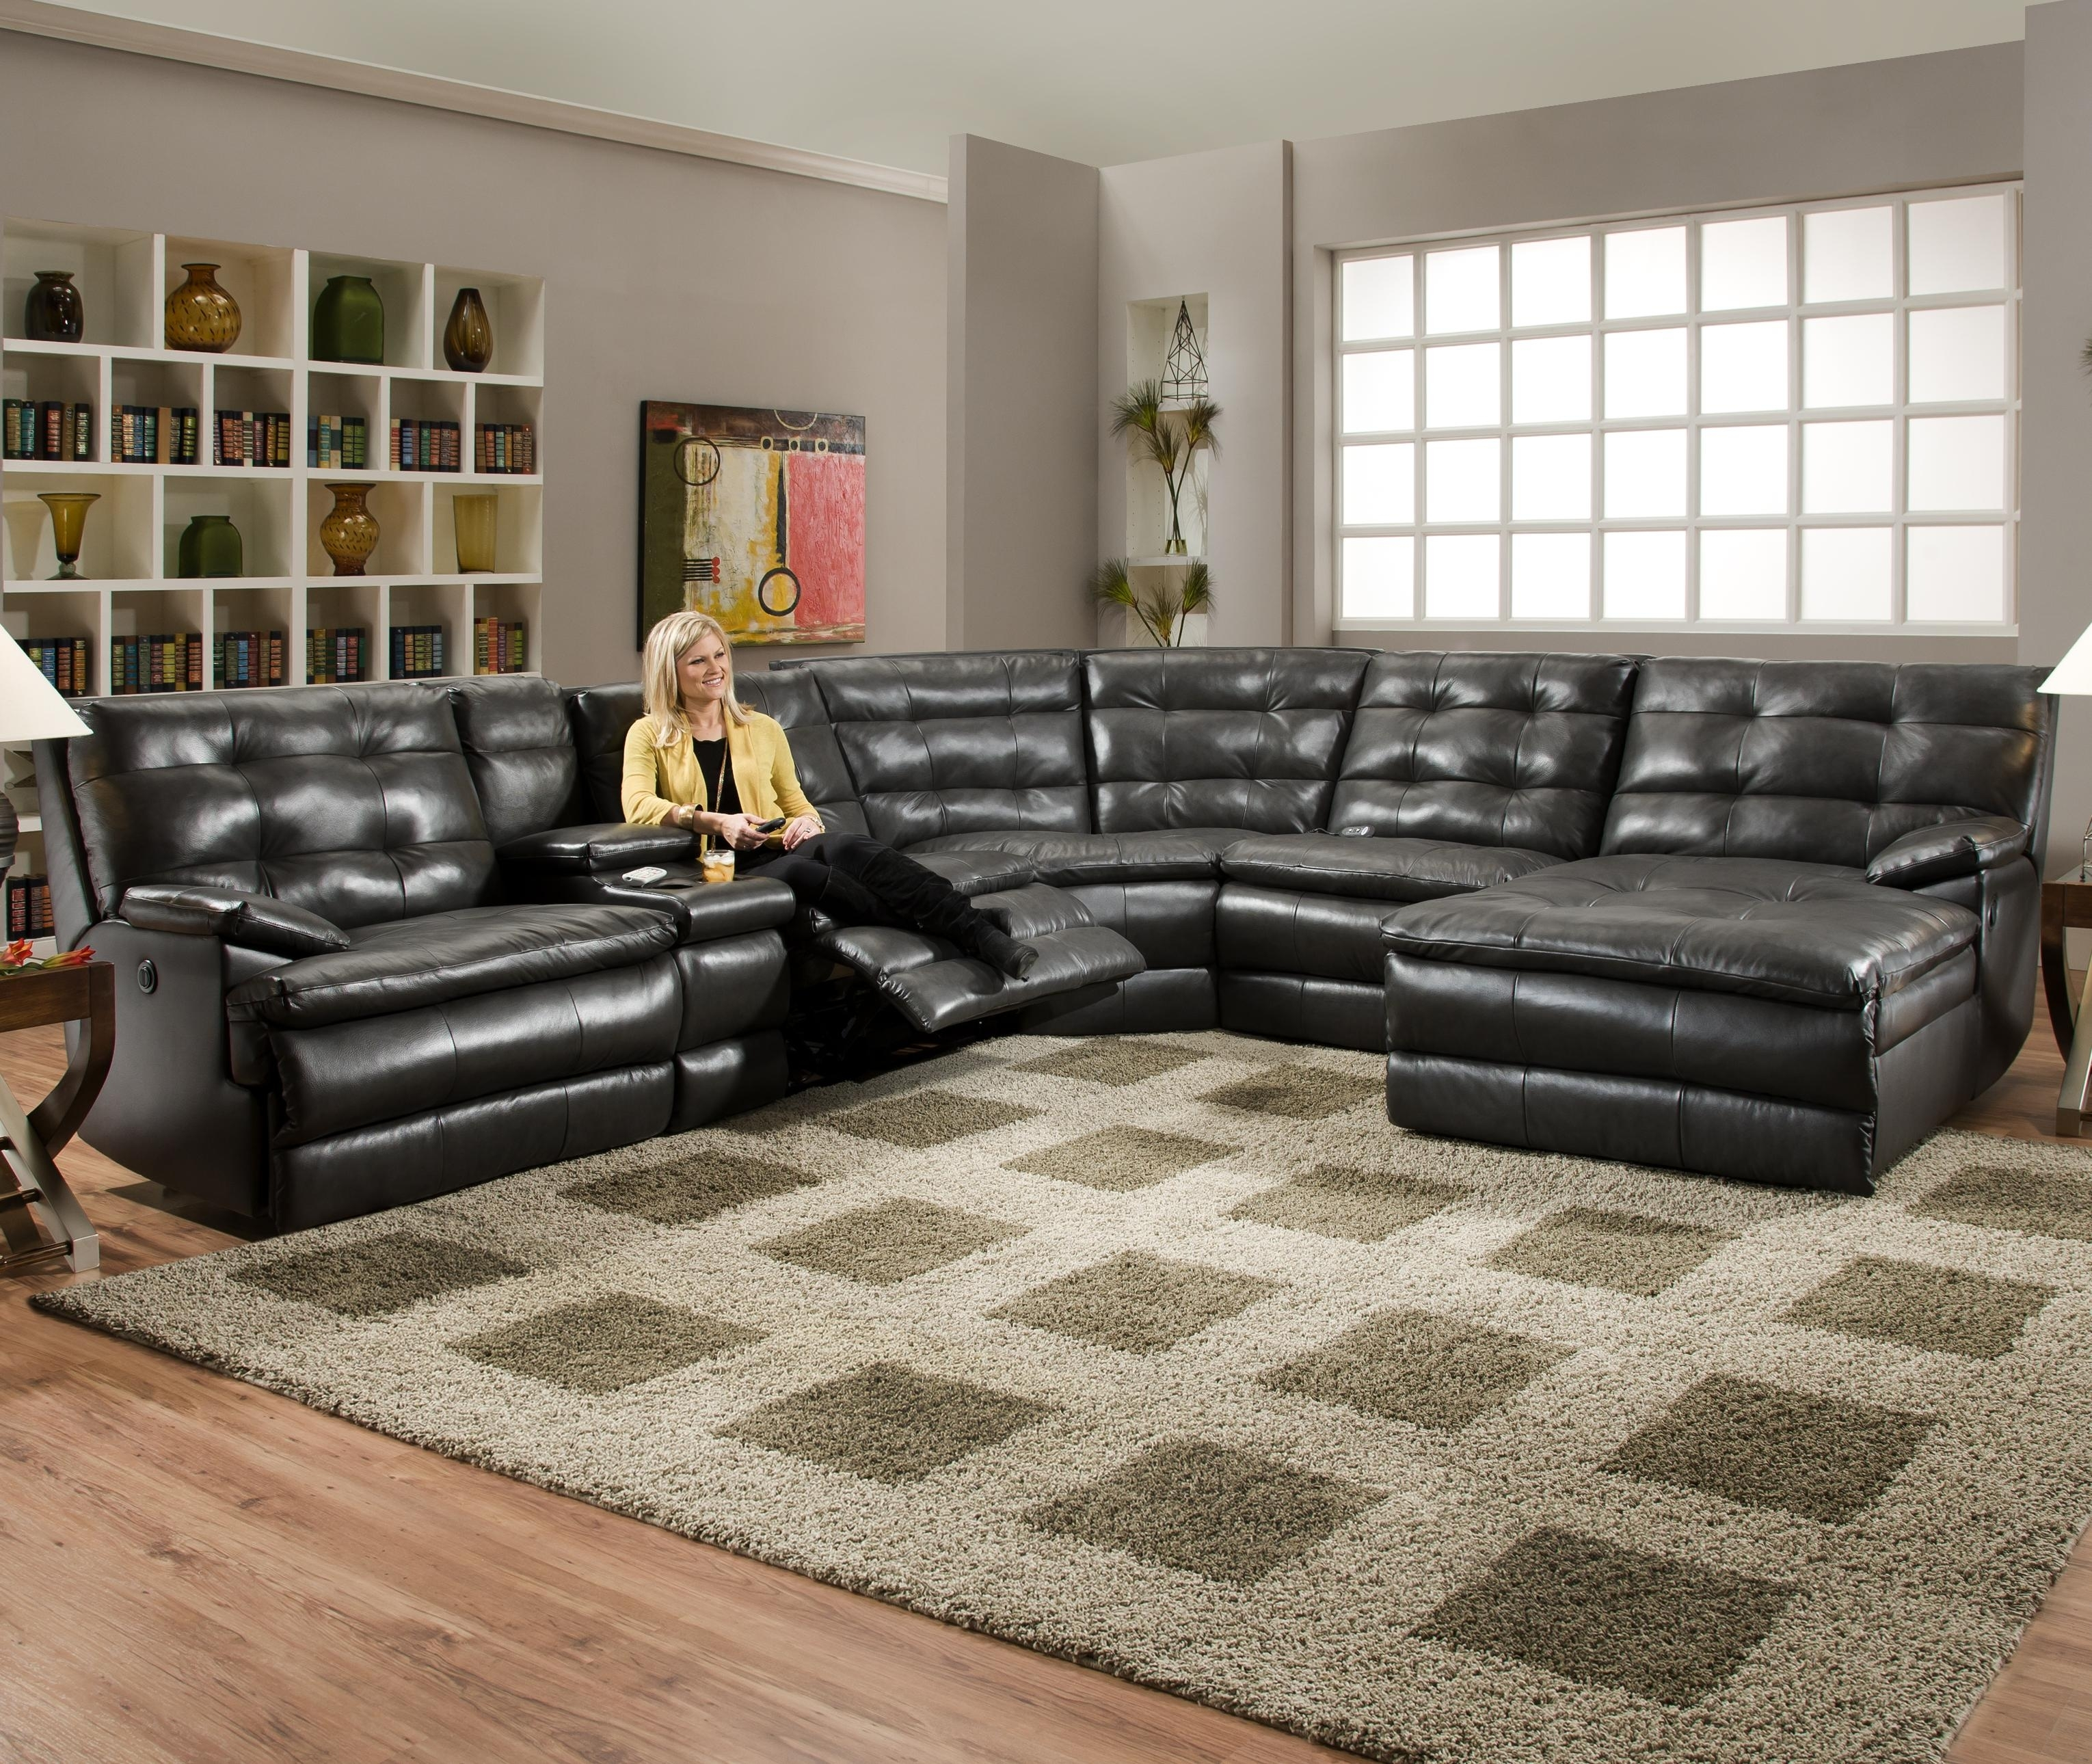 Luxurious Tufted Leather Sectional Sofa In Classy Black Color With Within Reclining Sectional Sofas (Image 10 of 10)